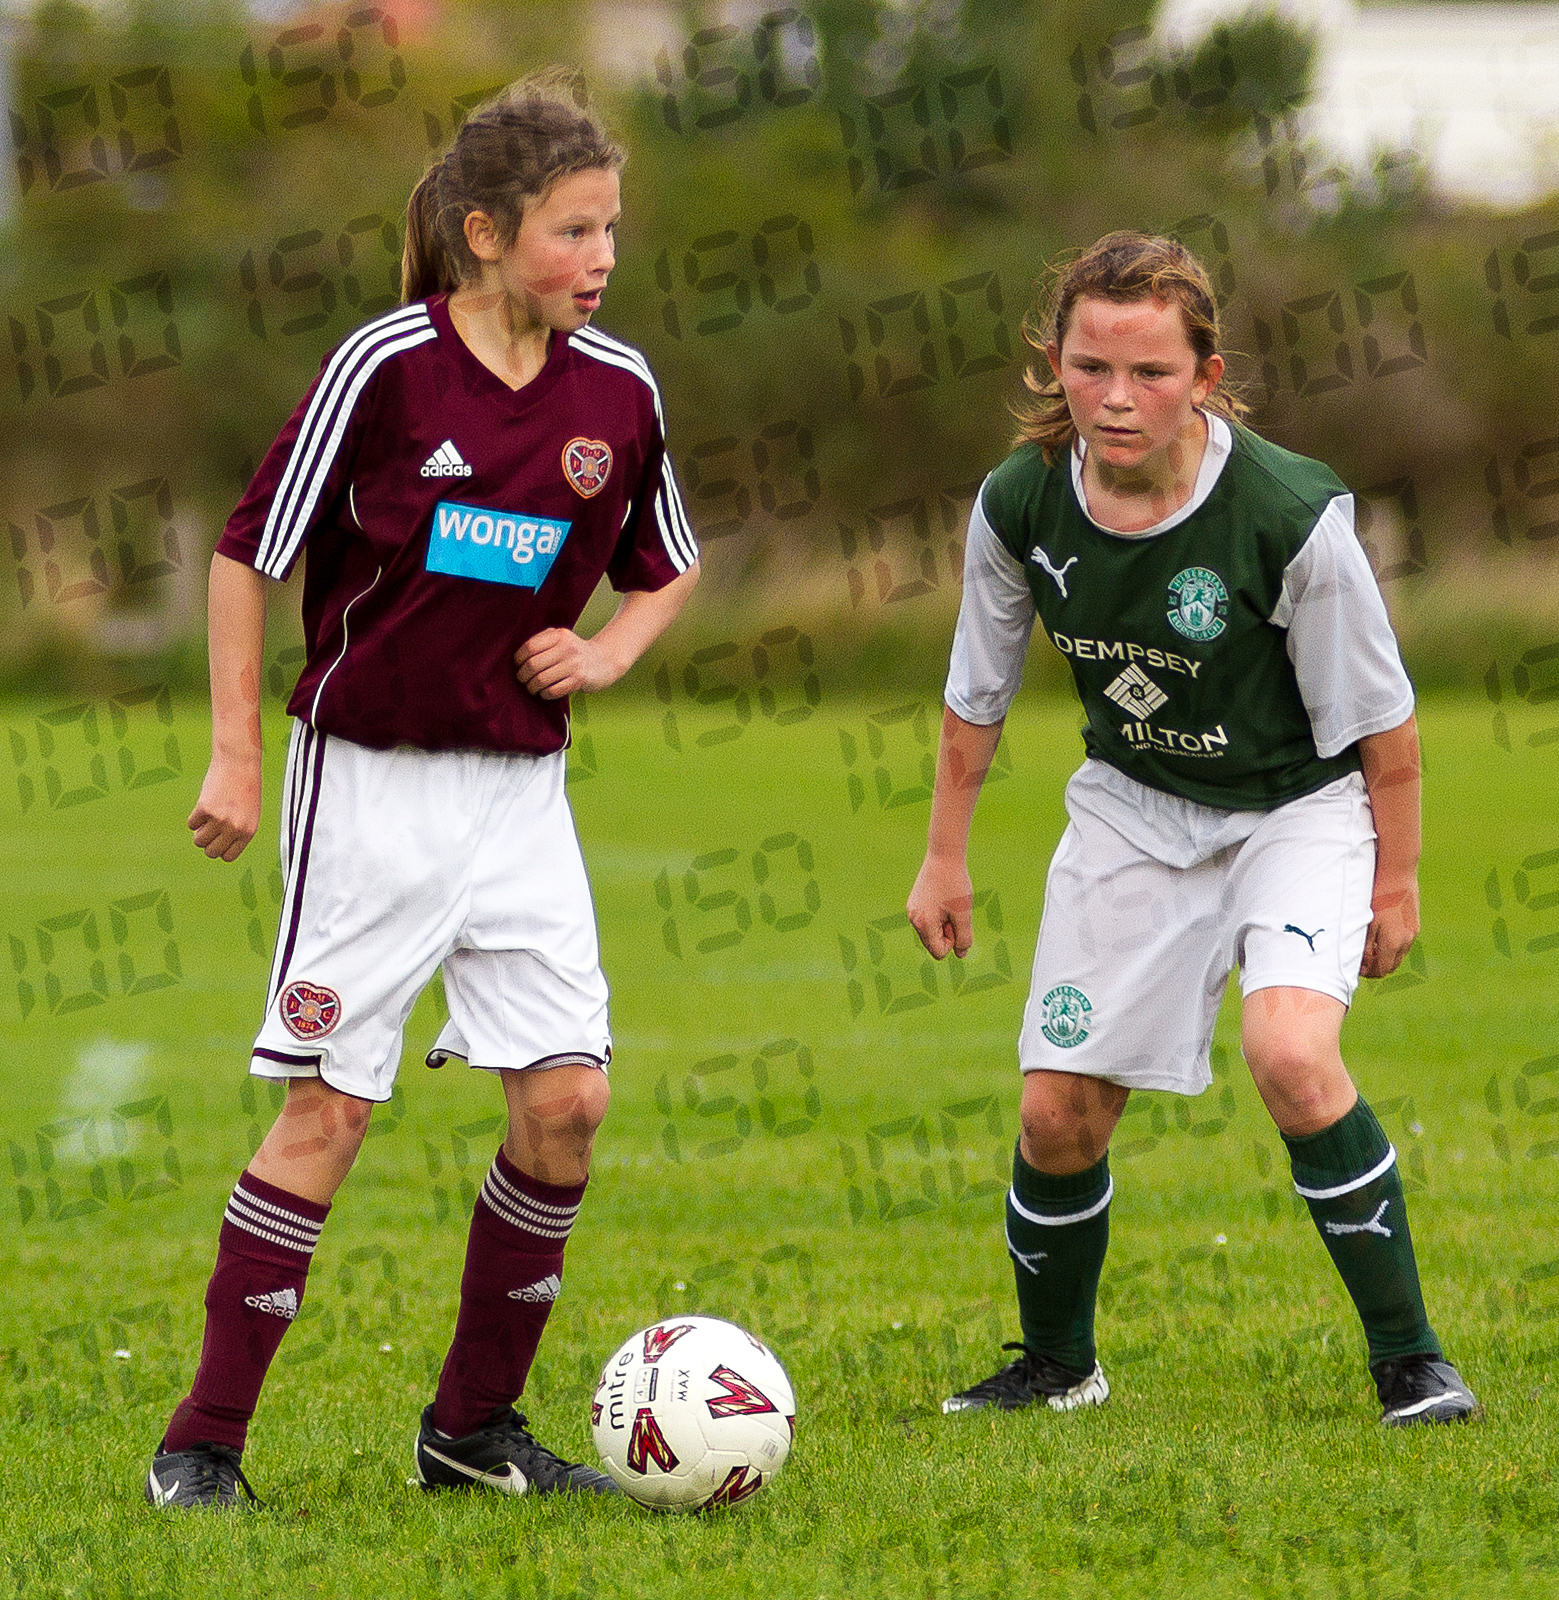 Hibs_v_Hearts_girls_13s-25.jpg